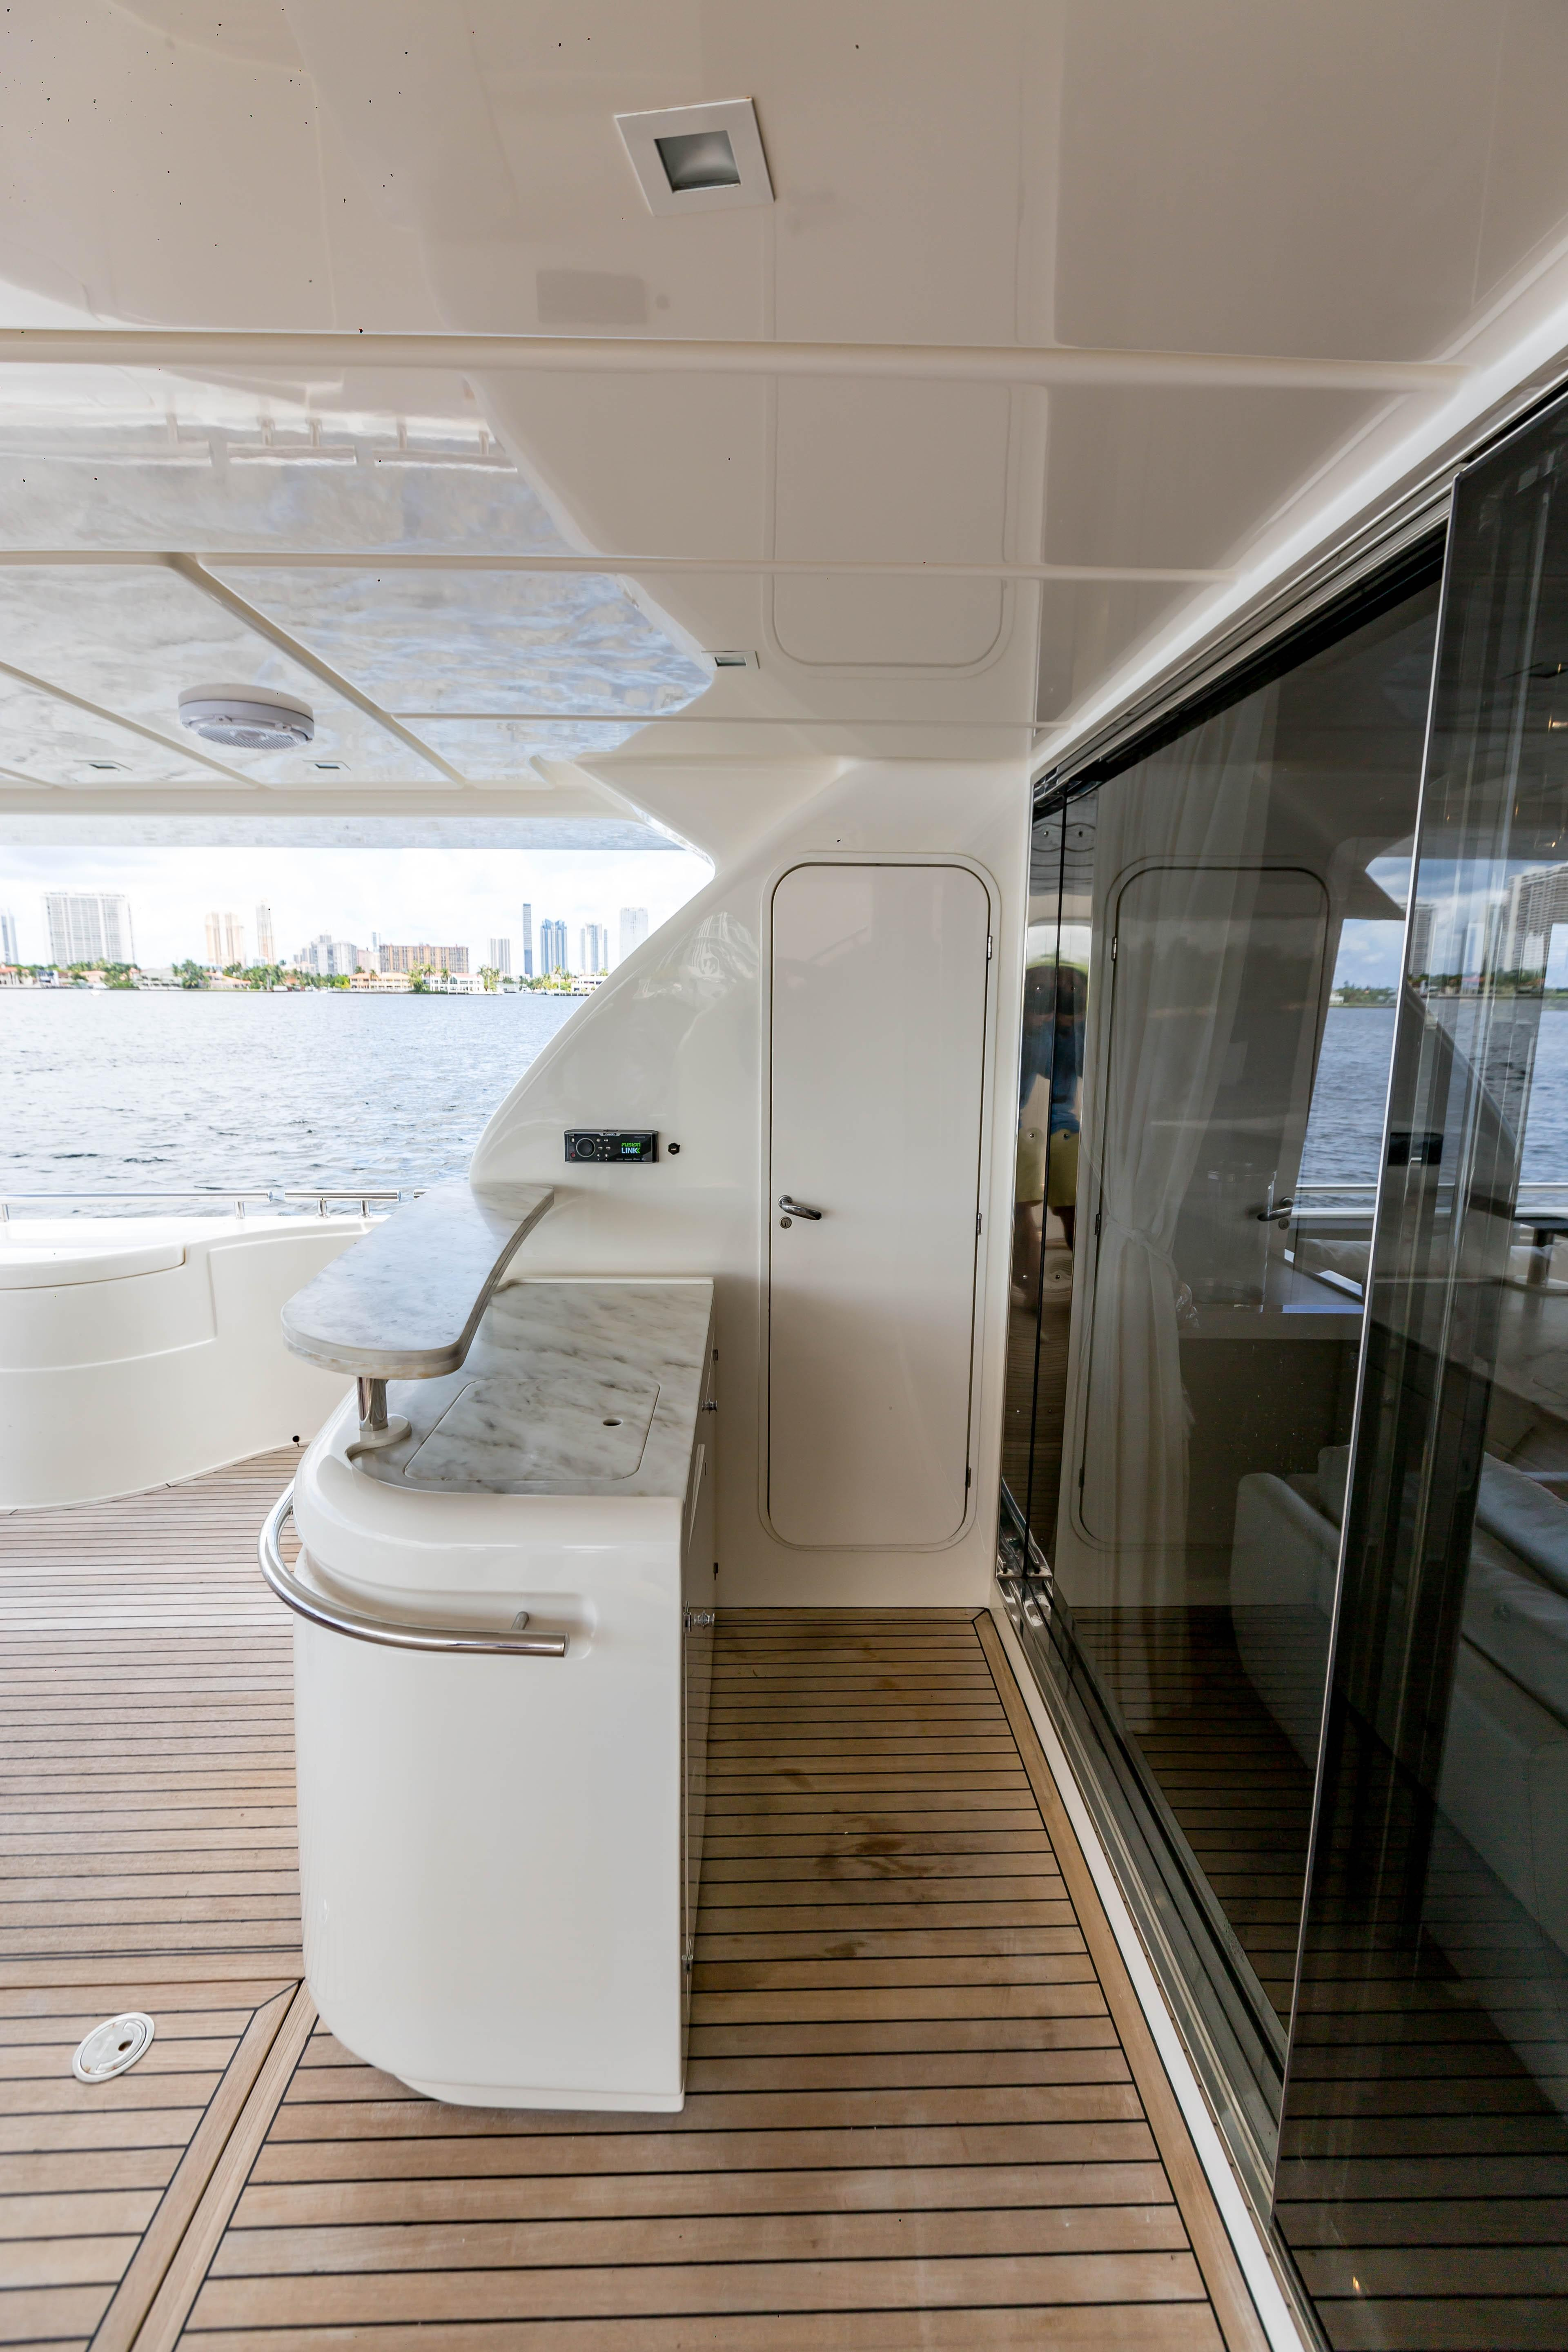 2016  Ferretti Yachts 870 Paola IV - Crew Quarters and Entry door